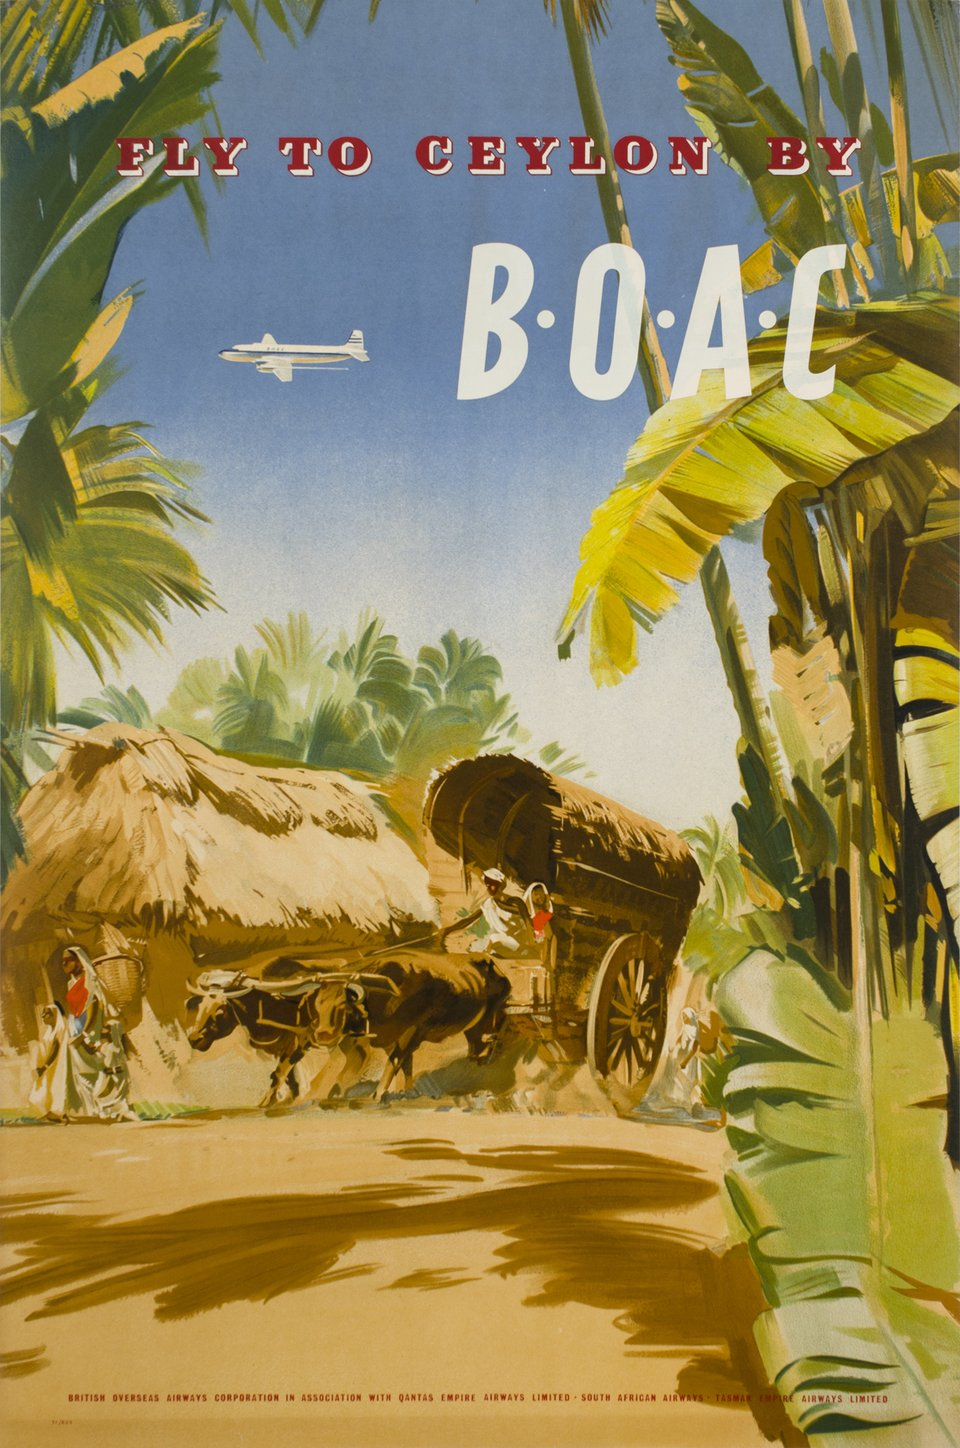 BOAC, Fly to Ceylon by B.O.A.C. – Affiche ancienne –  ANONYME – 1951